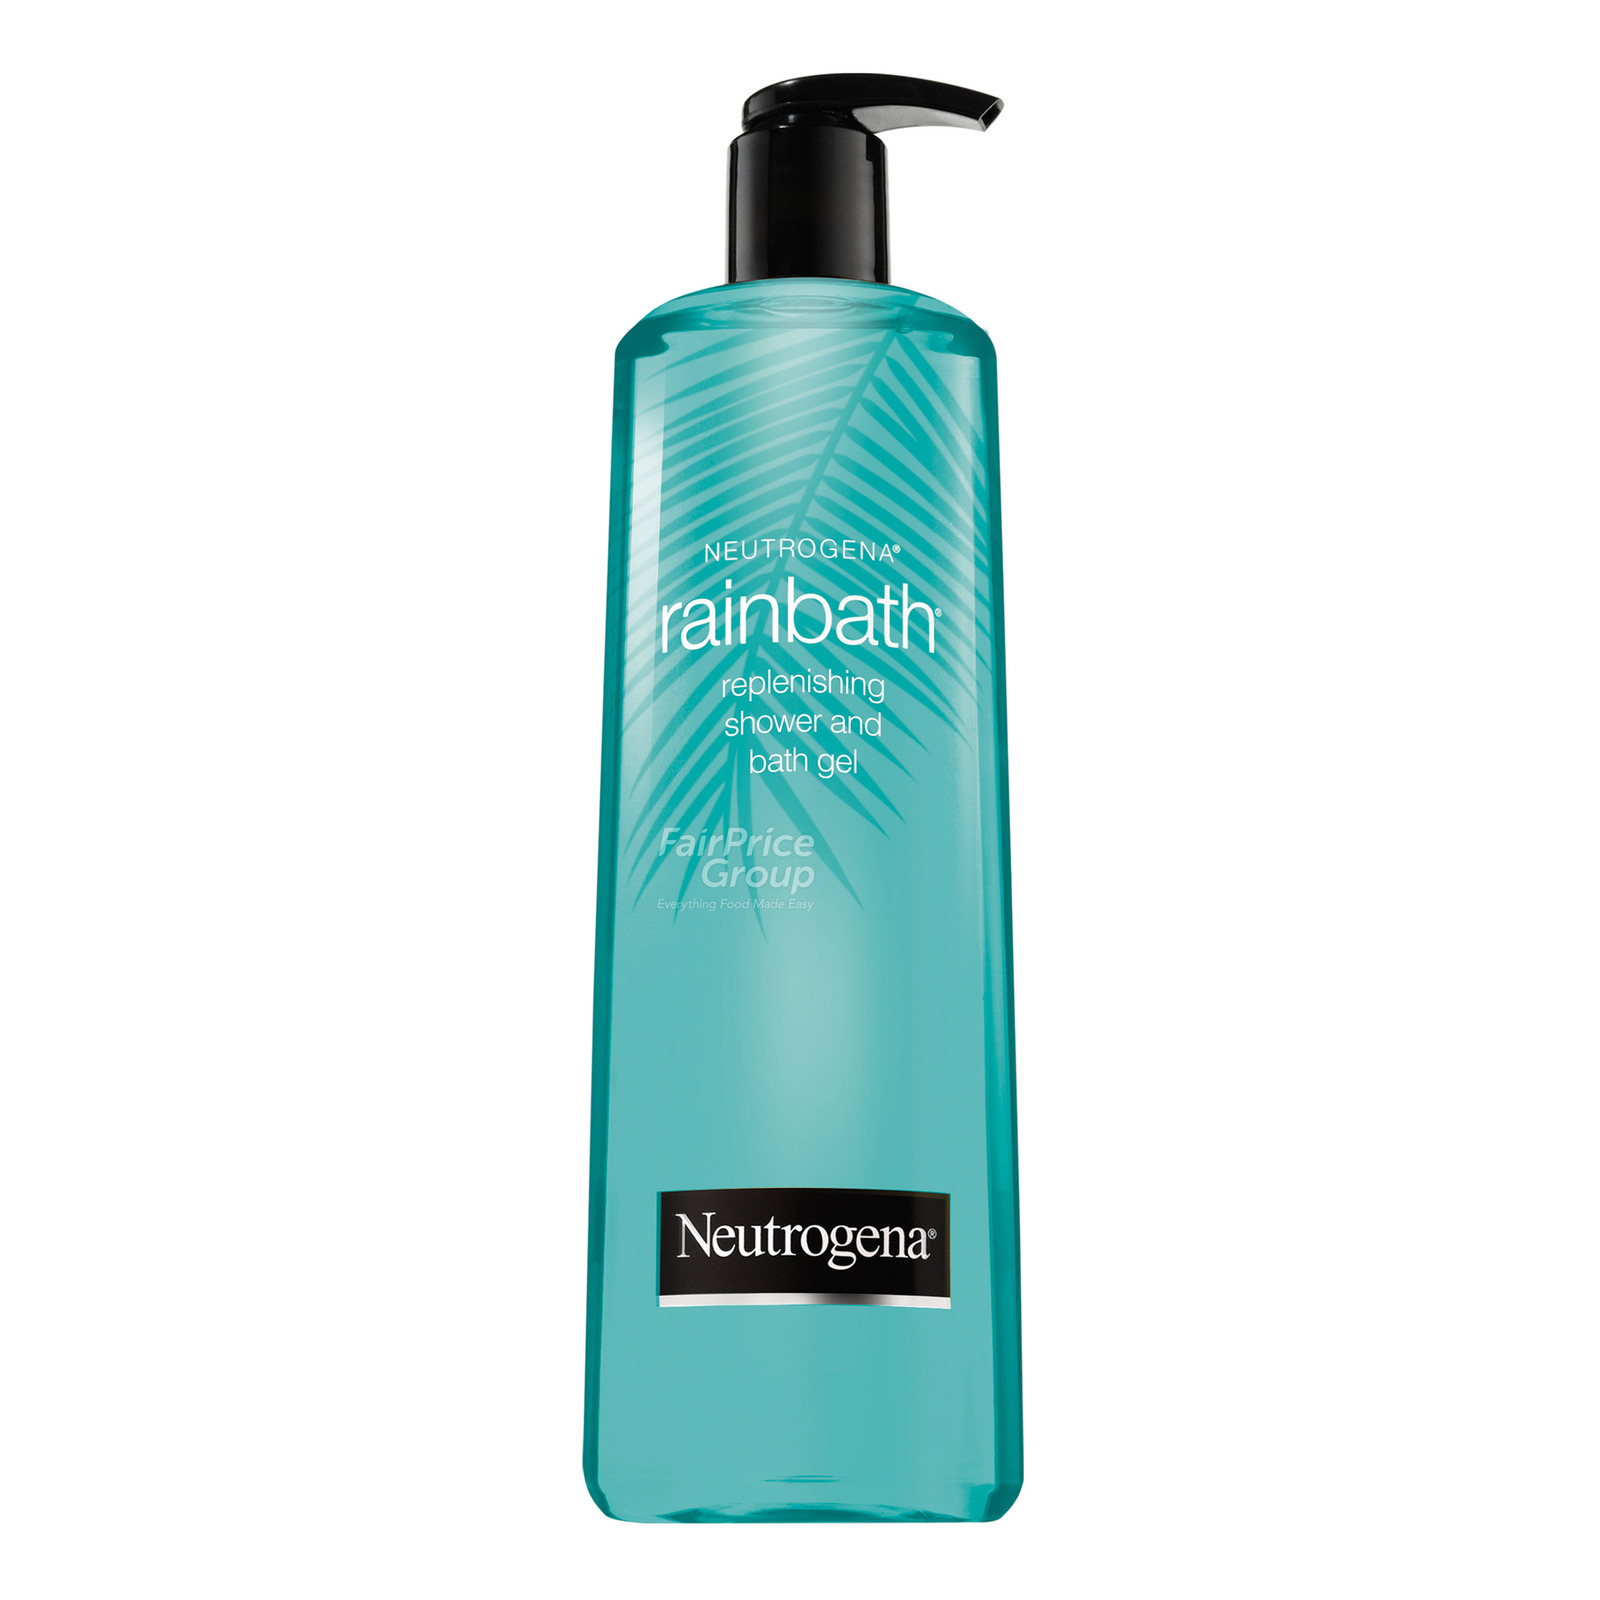 Neutrogena Rainbath Shower & Bath Gel - Ocean Mist